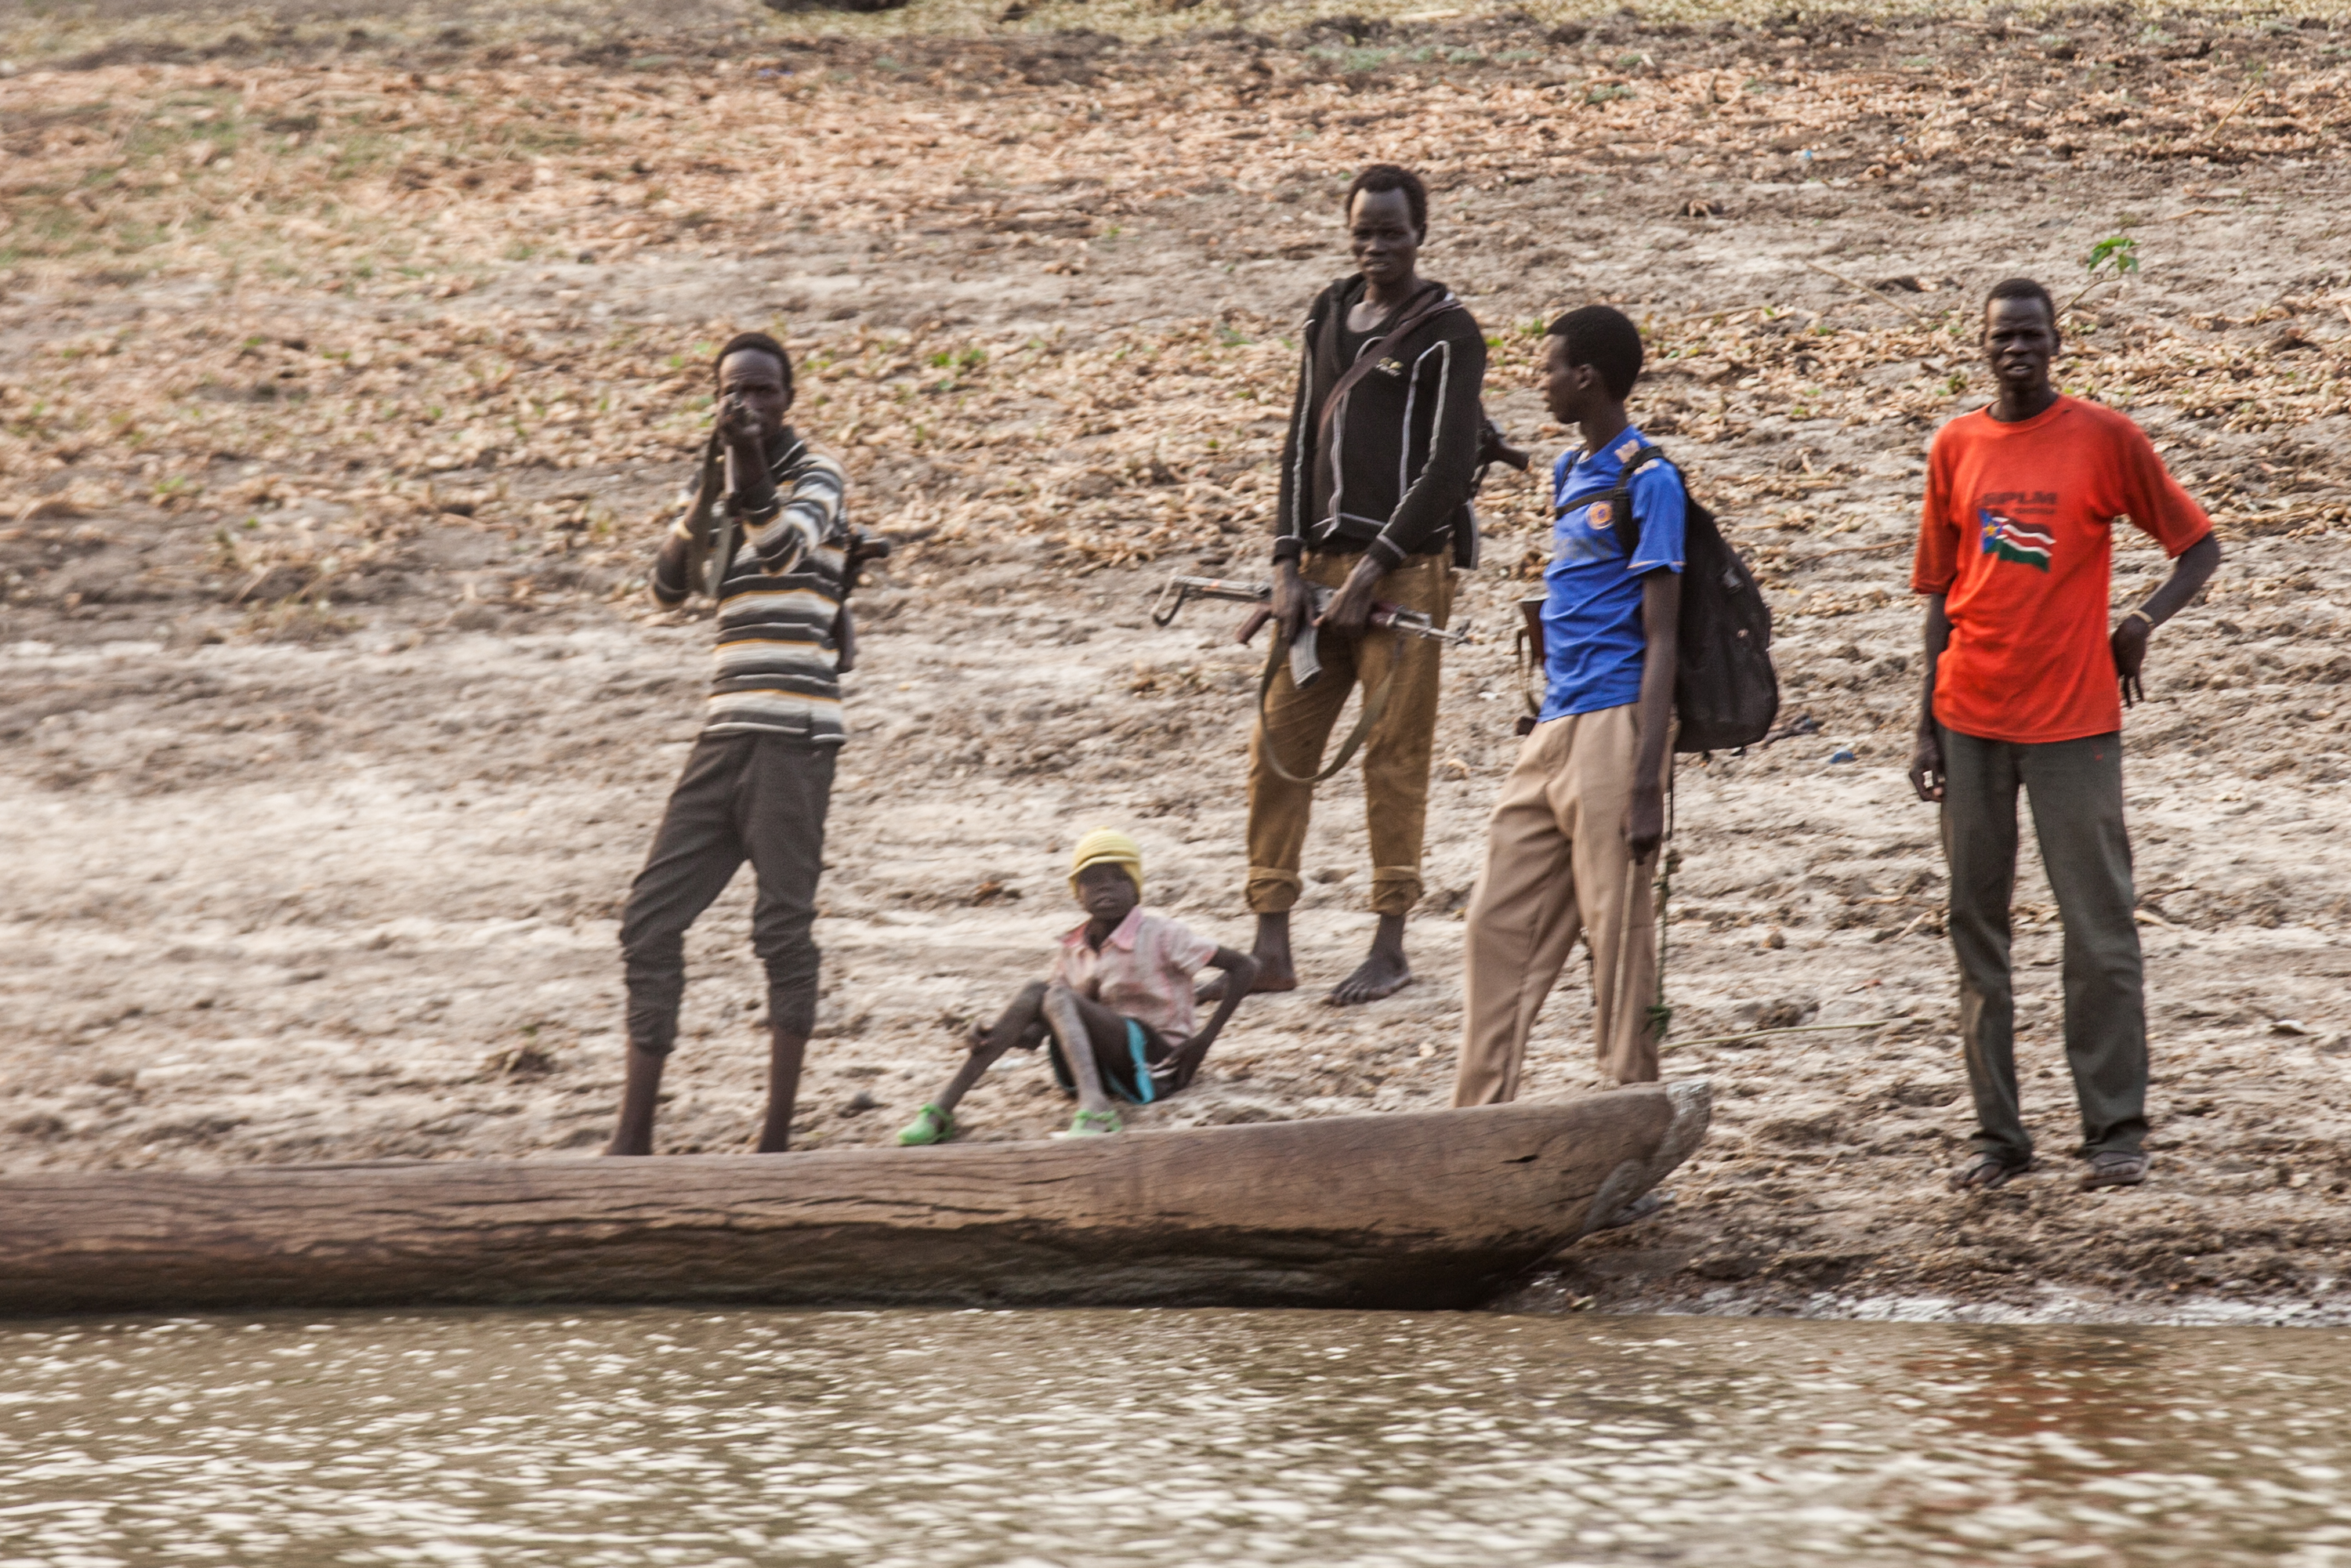 A man points his rifle at the photographer between Akobo and Nasir, S Sudan